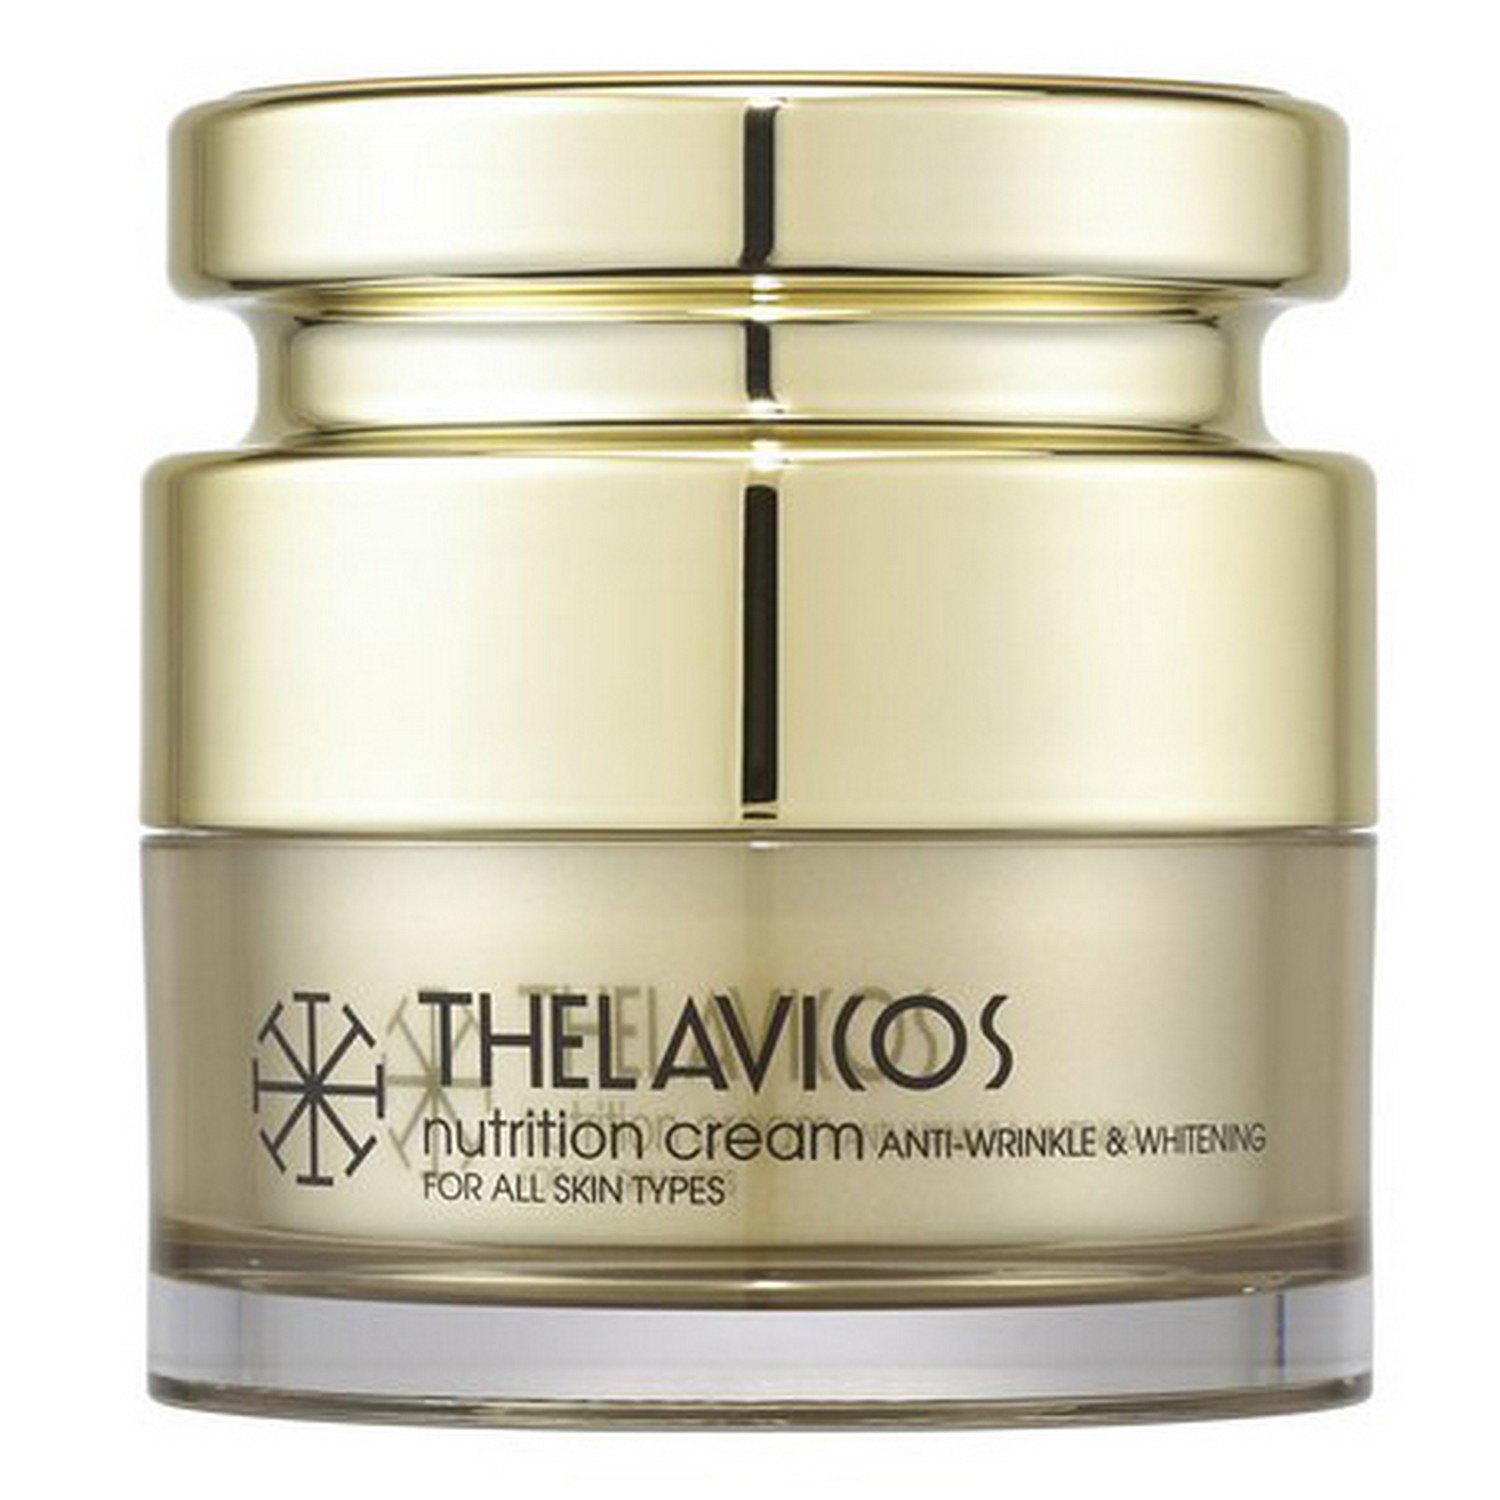 Buy THELAVICOS nutrition cream (1.7 oz)